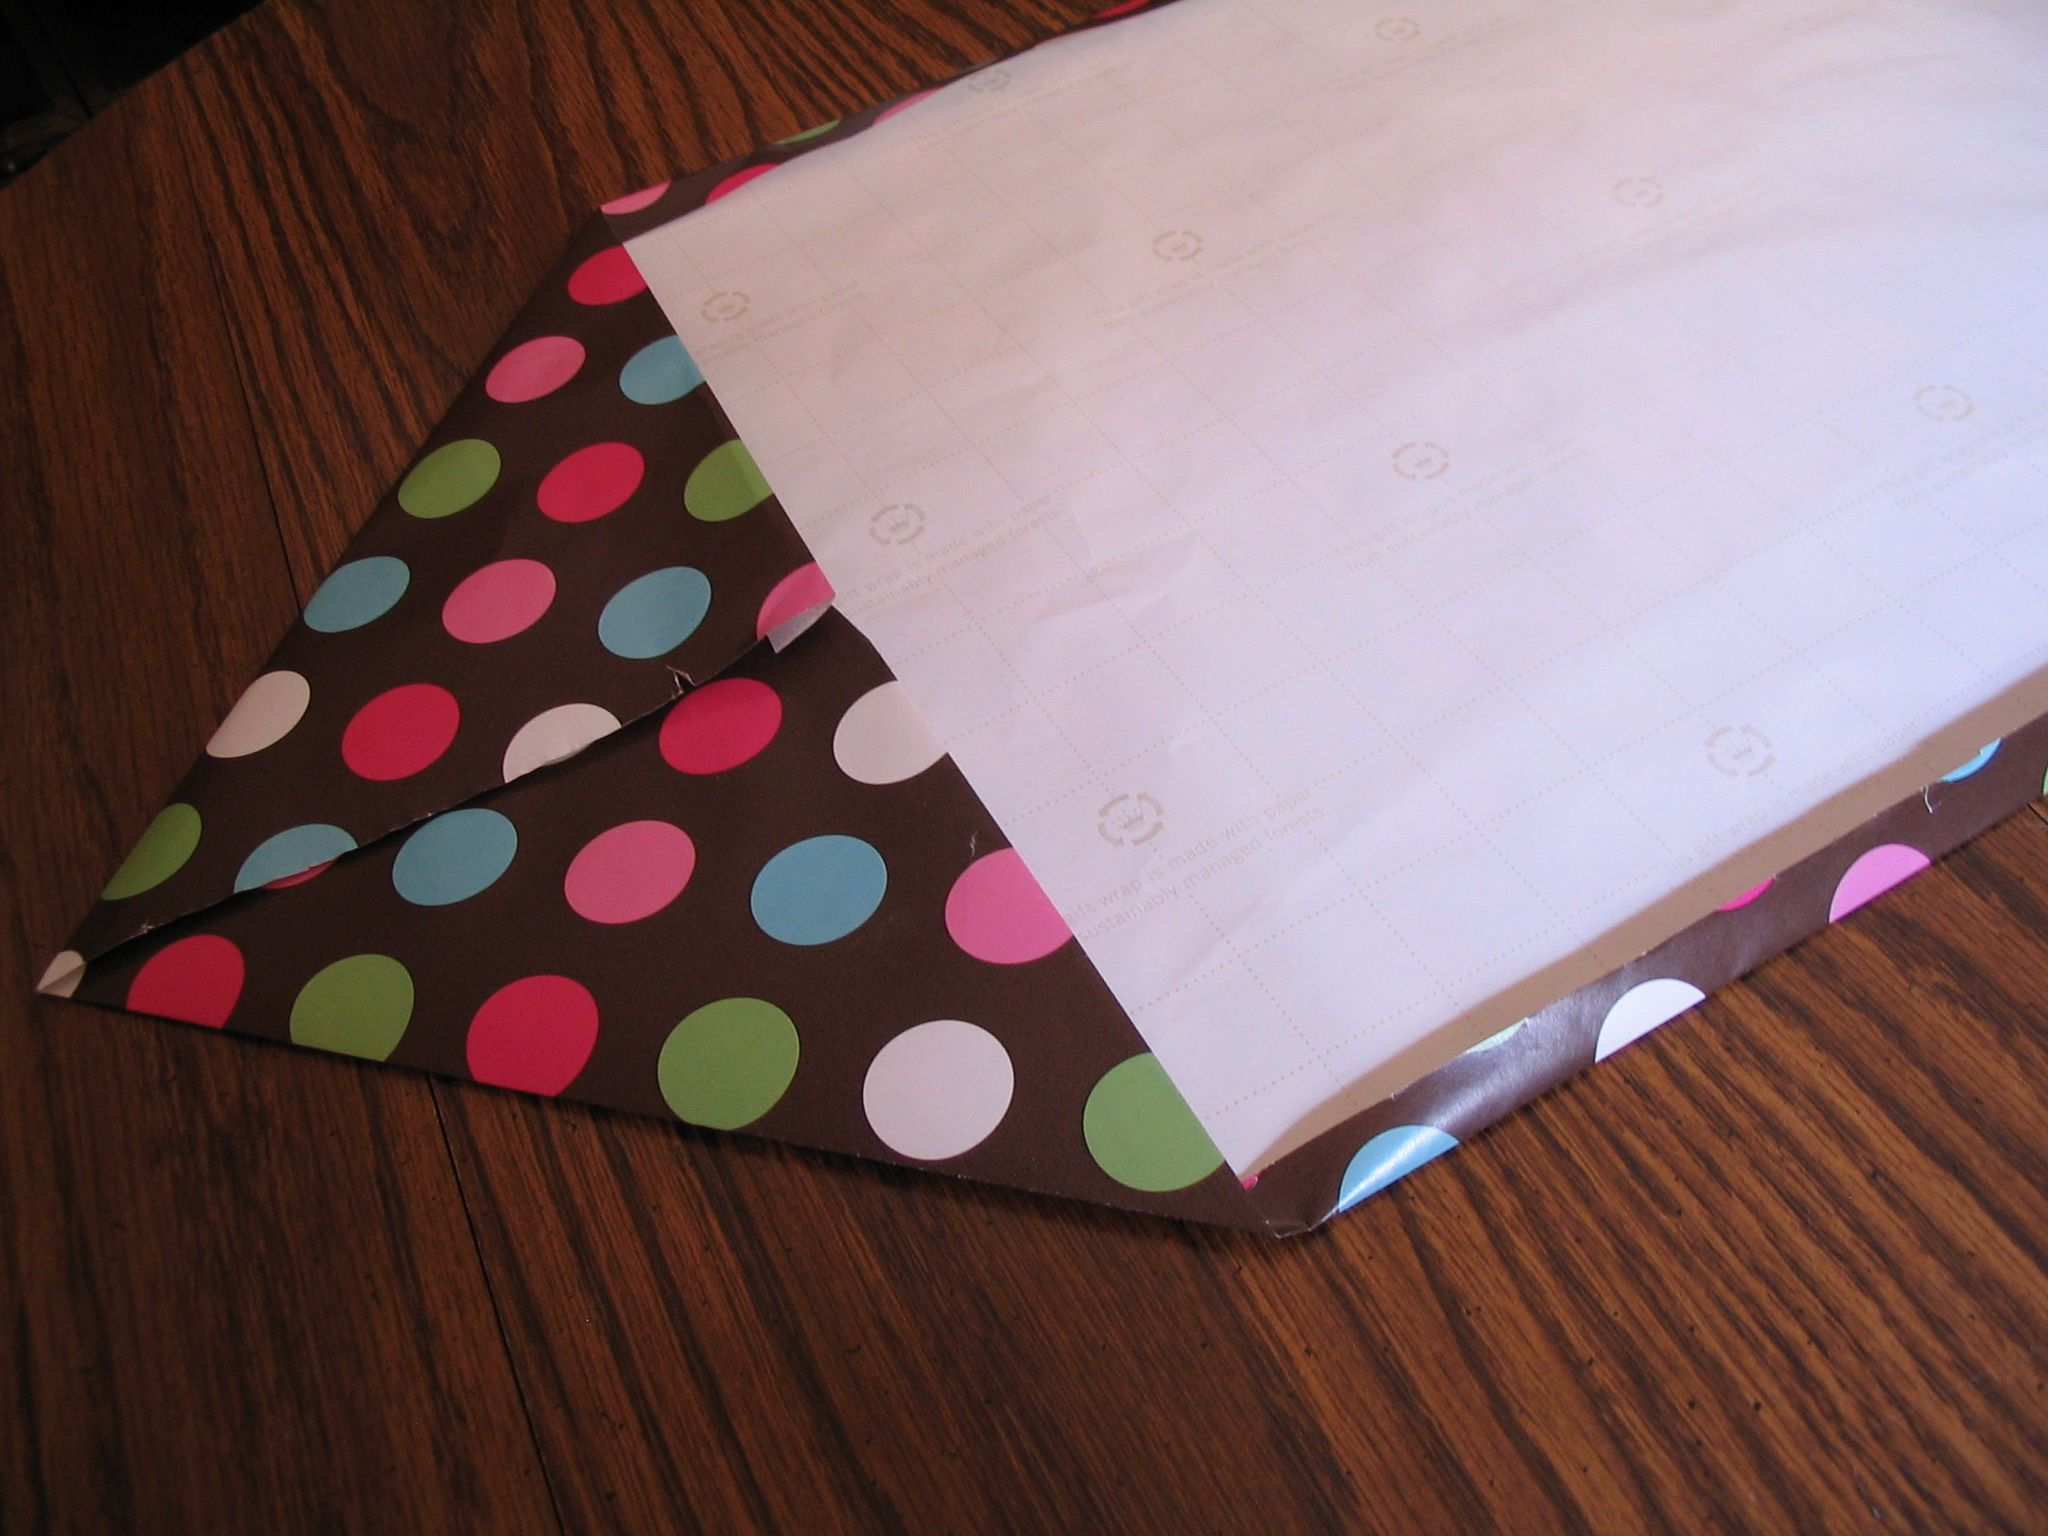 10 Minute (Wrapping Paper) Table Runner